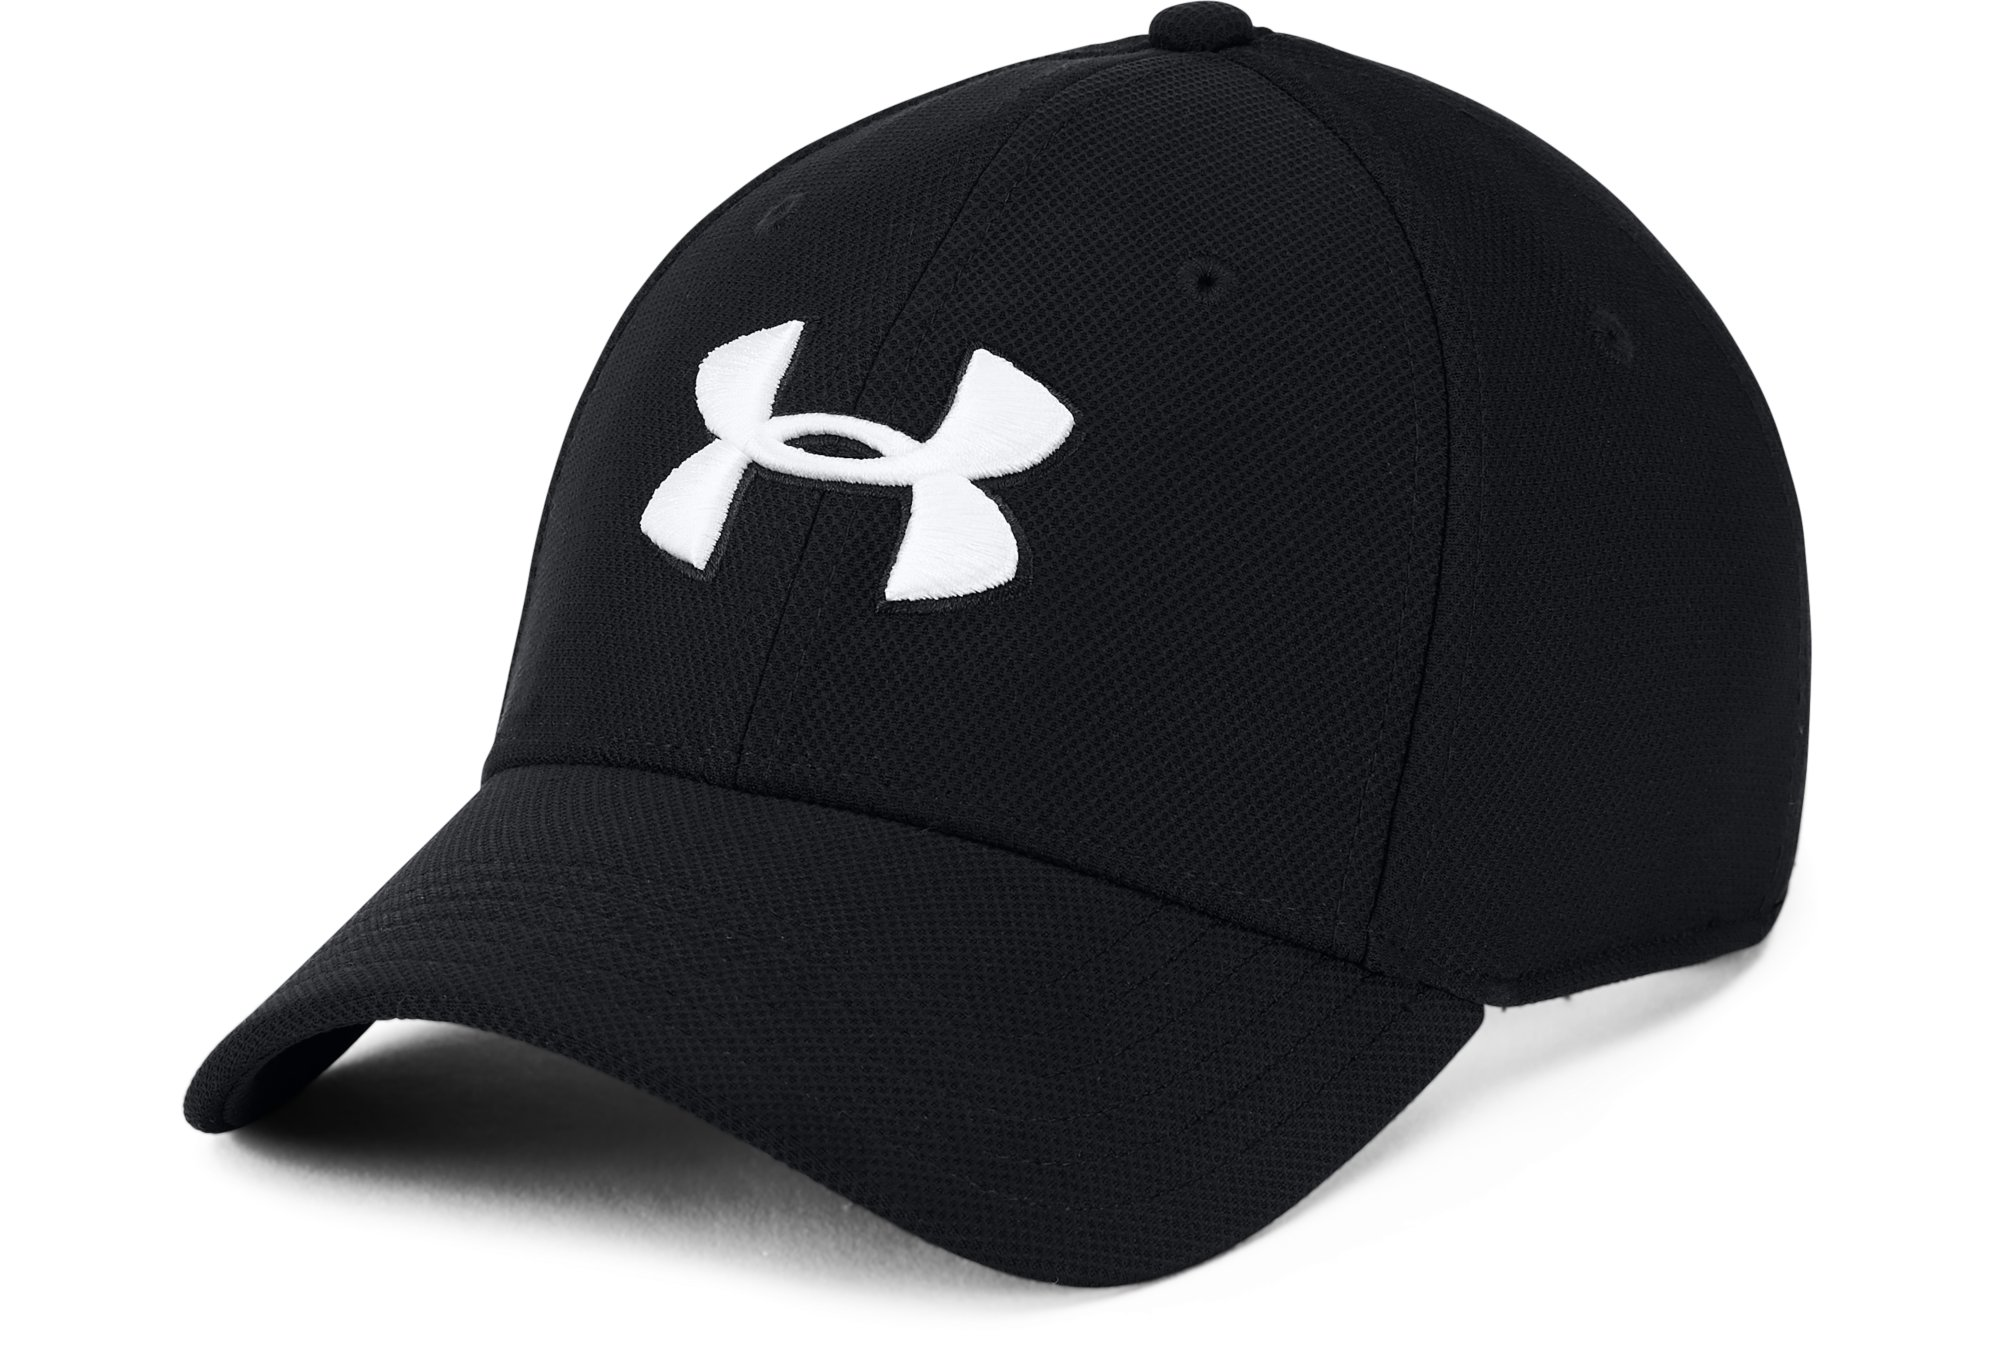 2bd00a0d8fc Under Armour Blitzing 3.0 Cap Black White